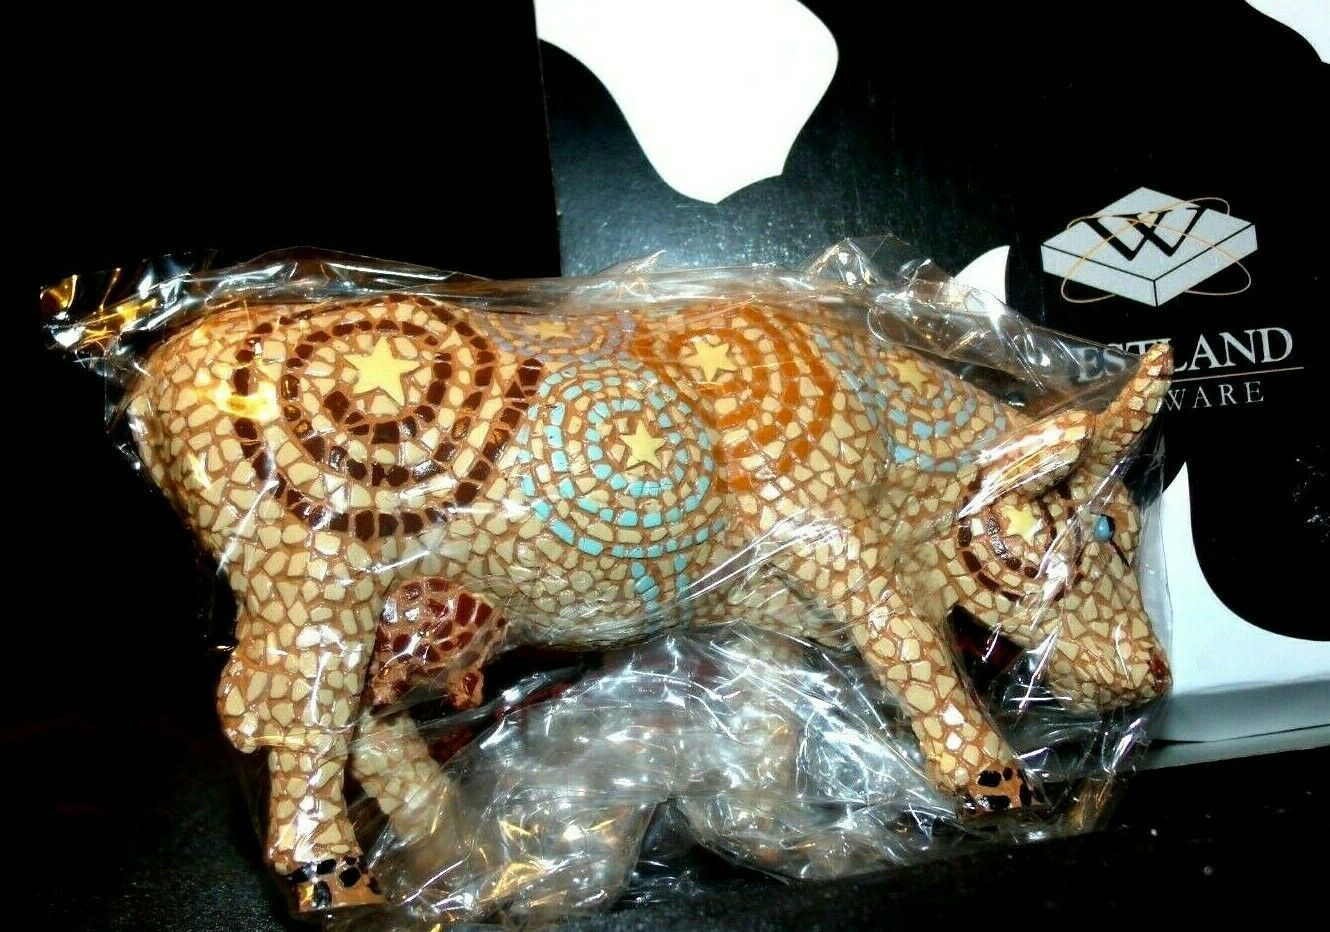 CowParade A Starry Night In Texas Item # 7255 Westland Giftware AA-191893 Vinta